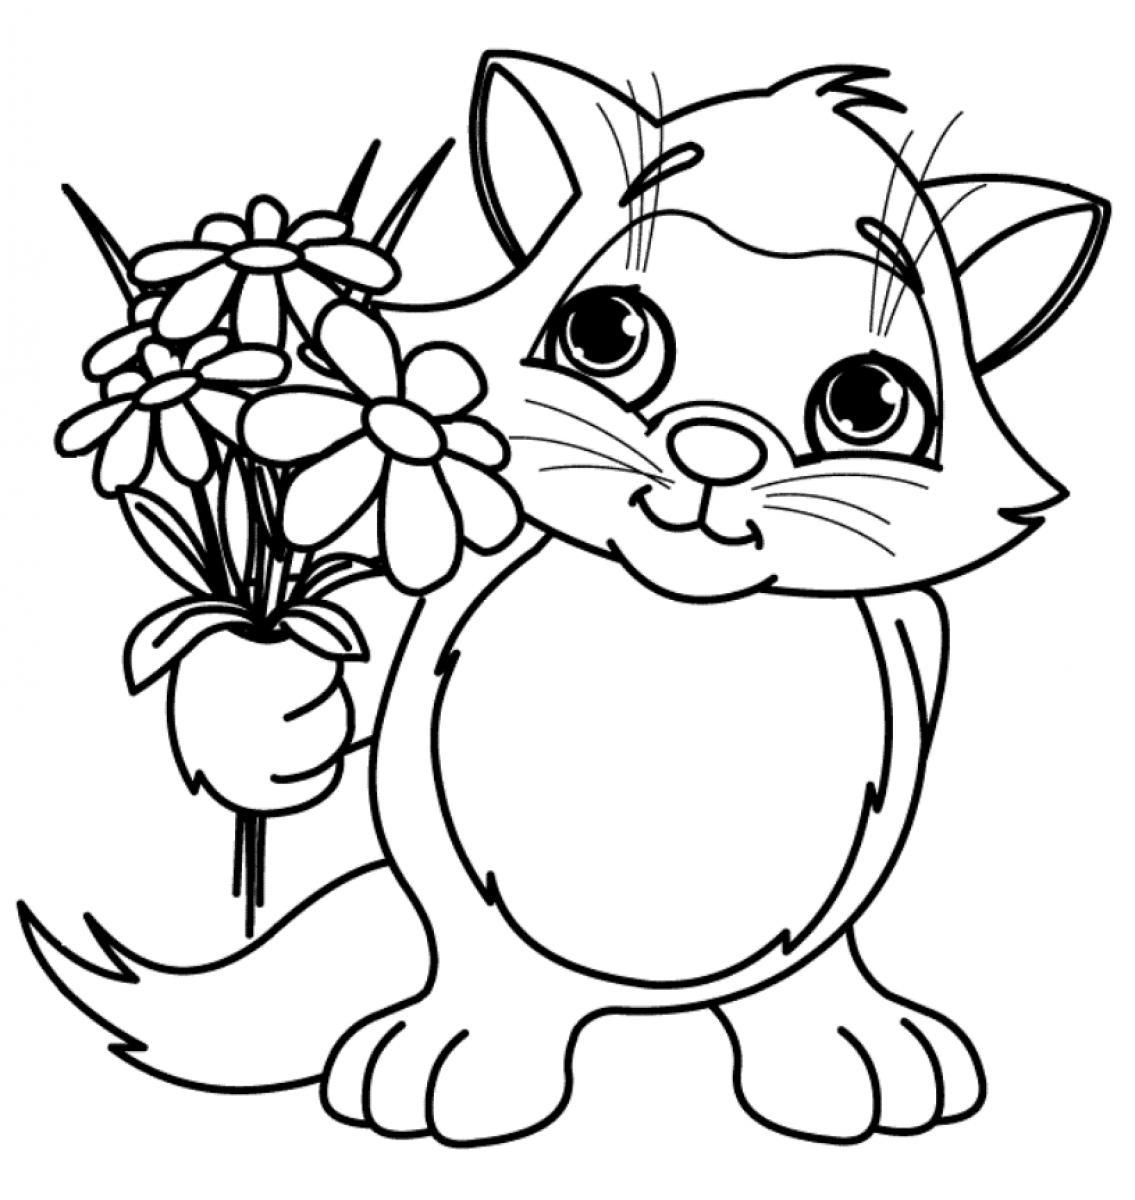 Spring flower coloring pages to download and print for free for Coloring pages of a flower